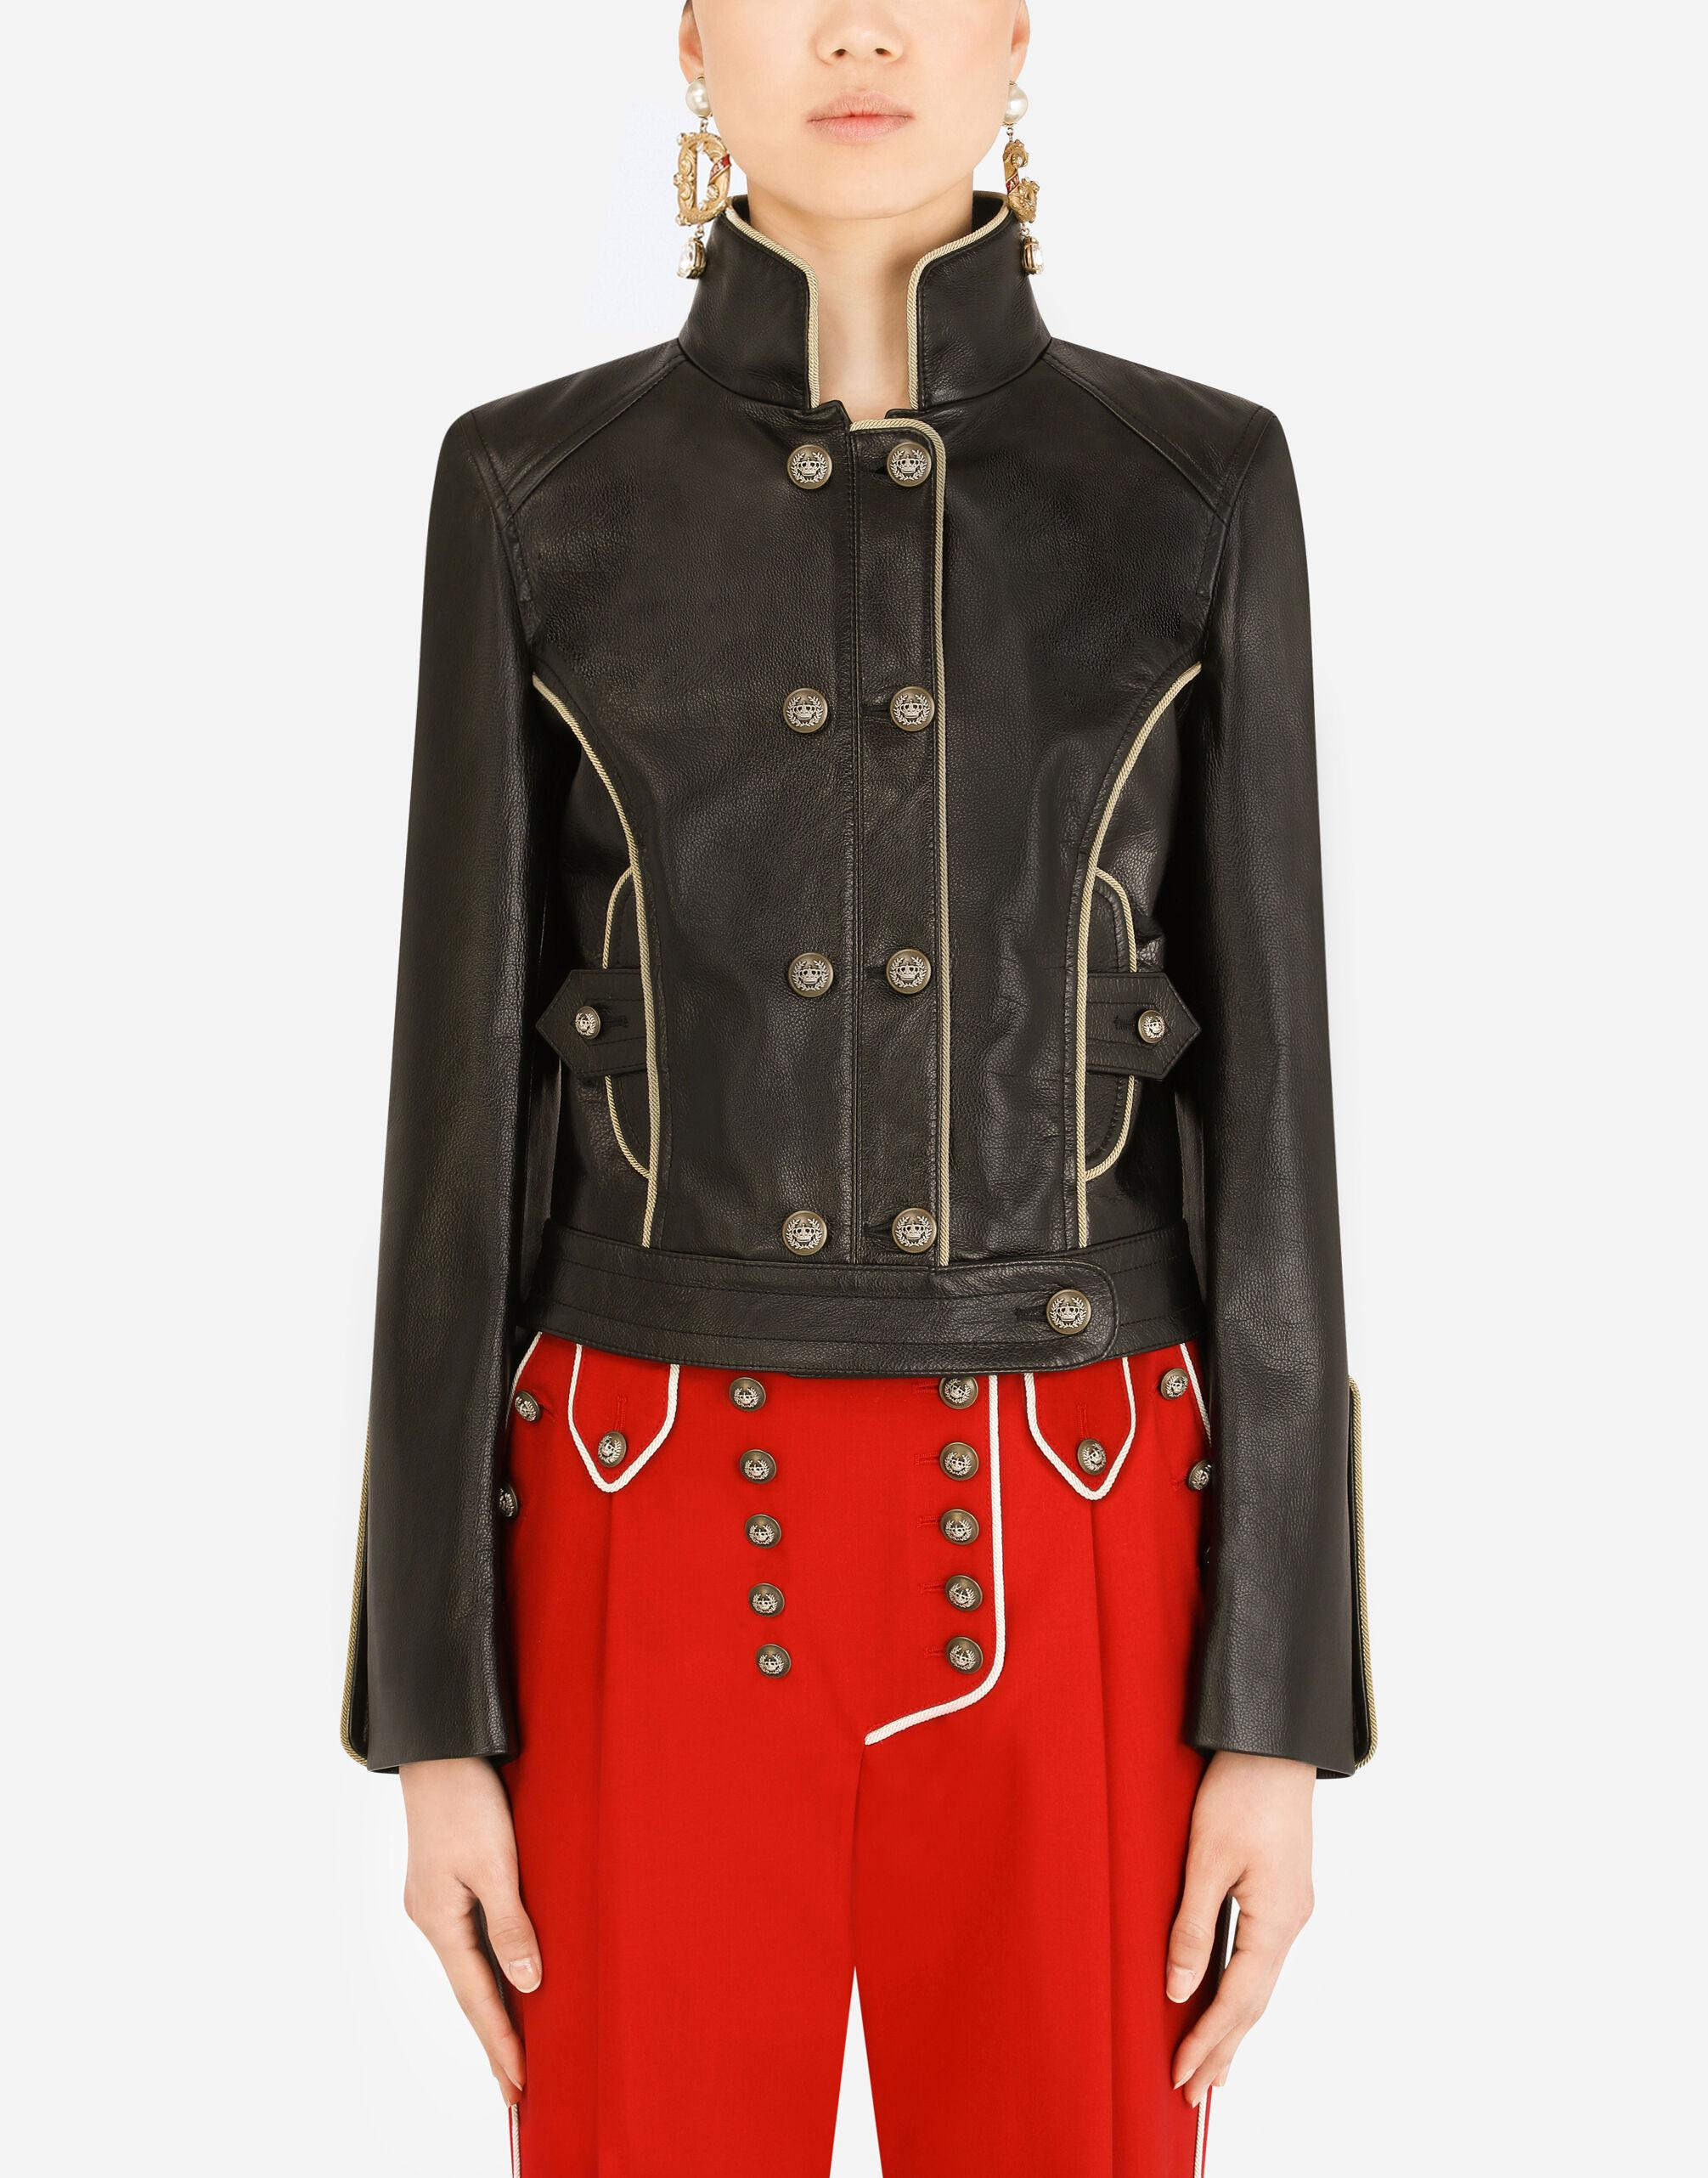 Leather biker jacket with heraldic buttons